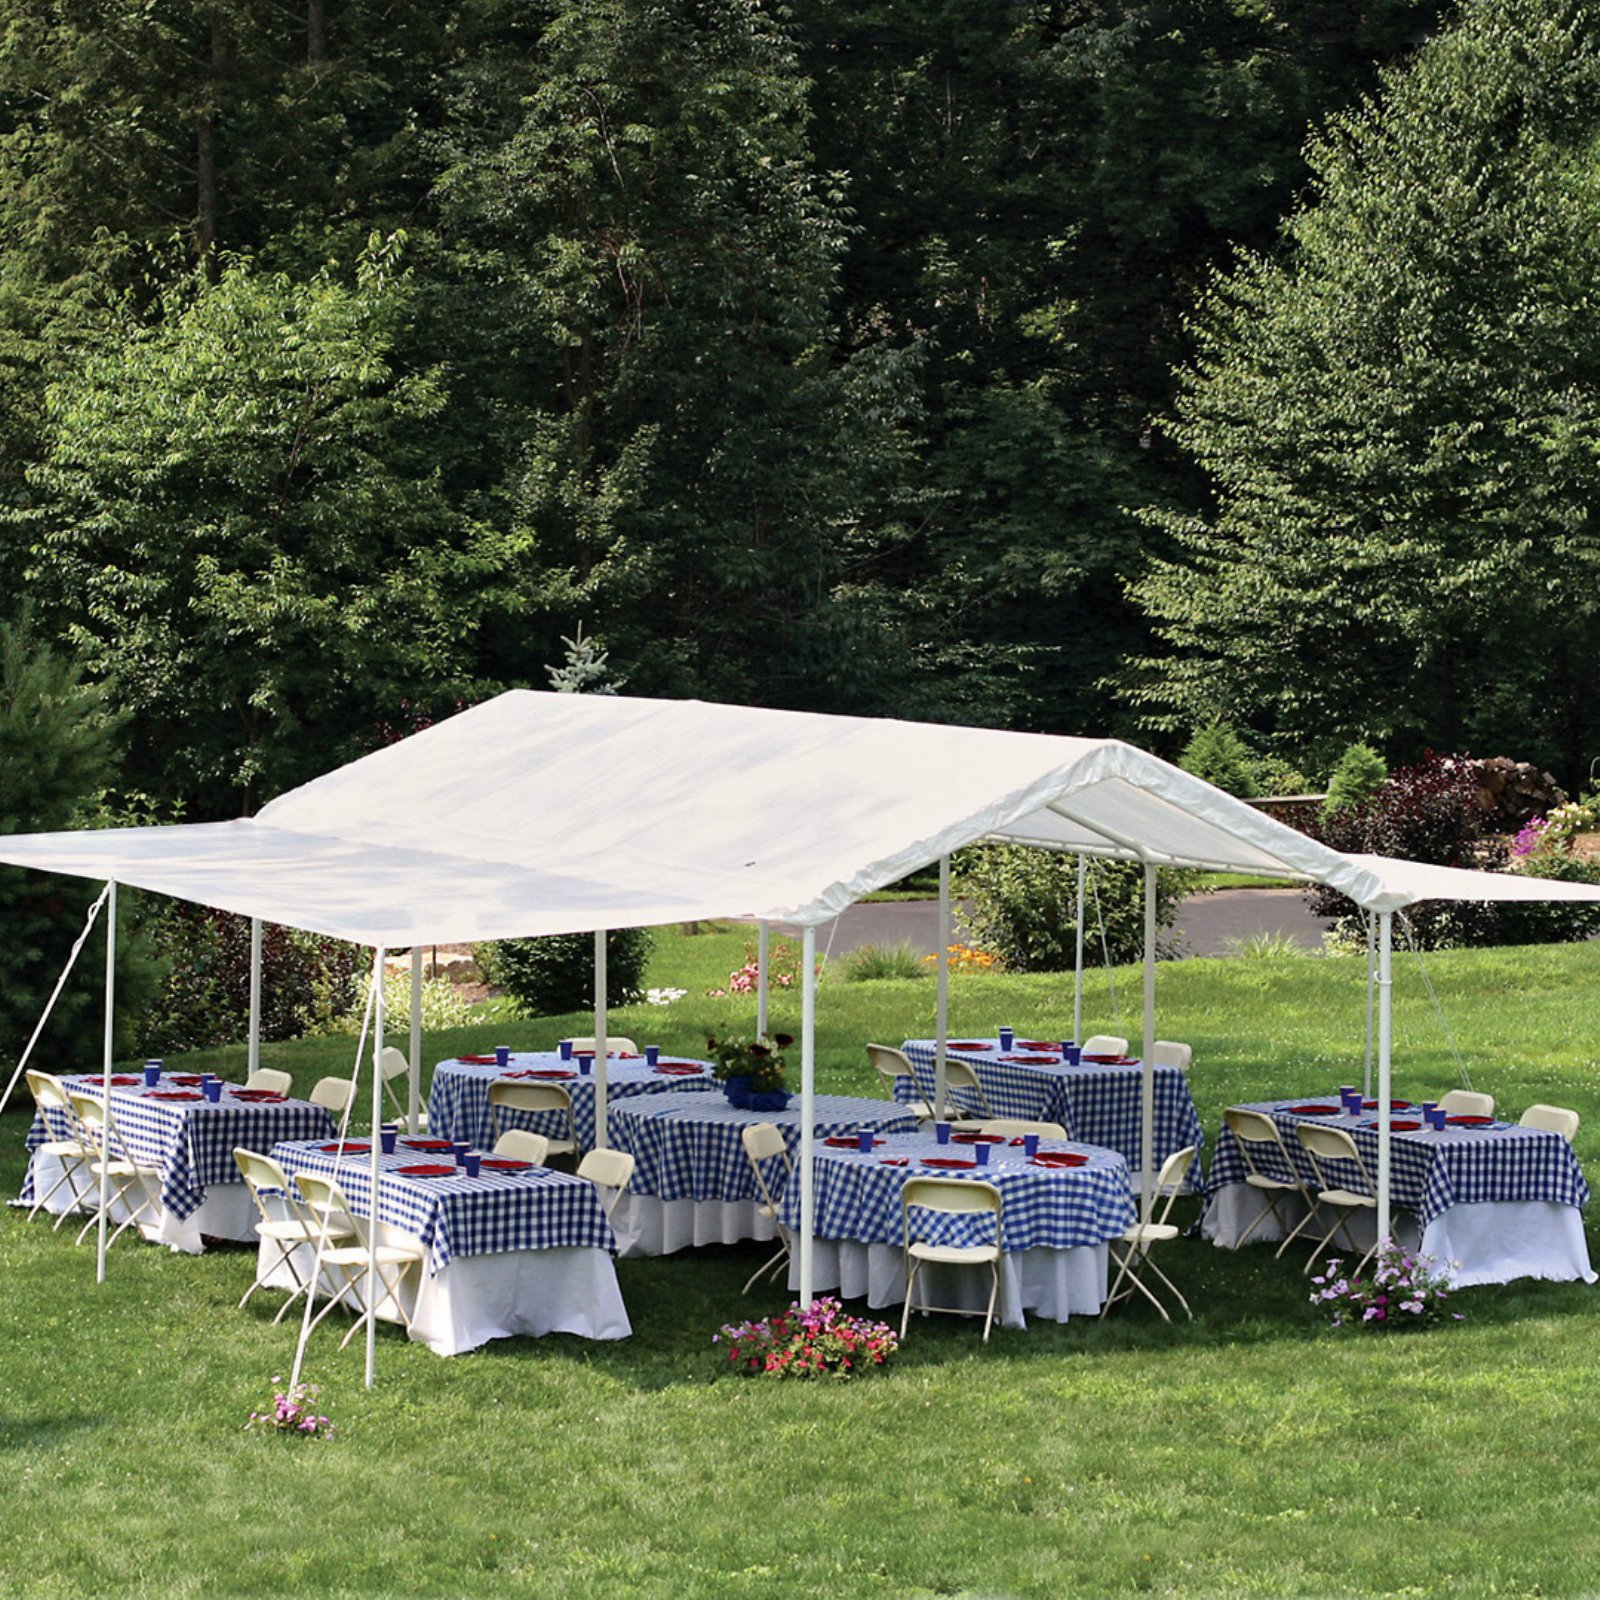 Max AP 10' x 20' 2-in-1 Canopy with Extension Kit by ShelterLogic